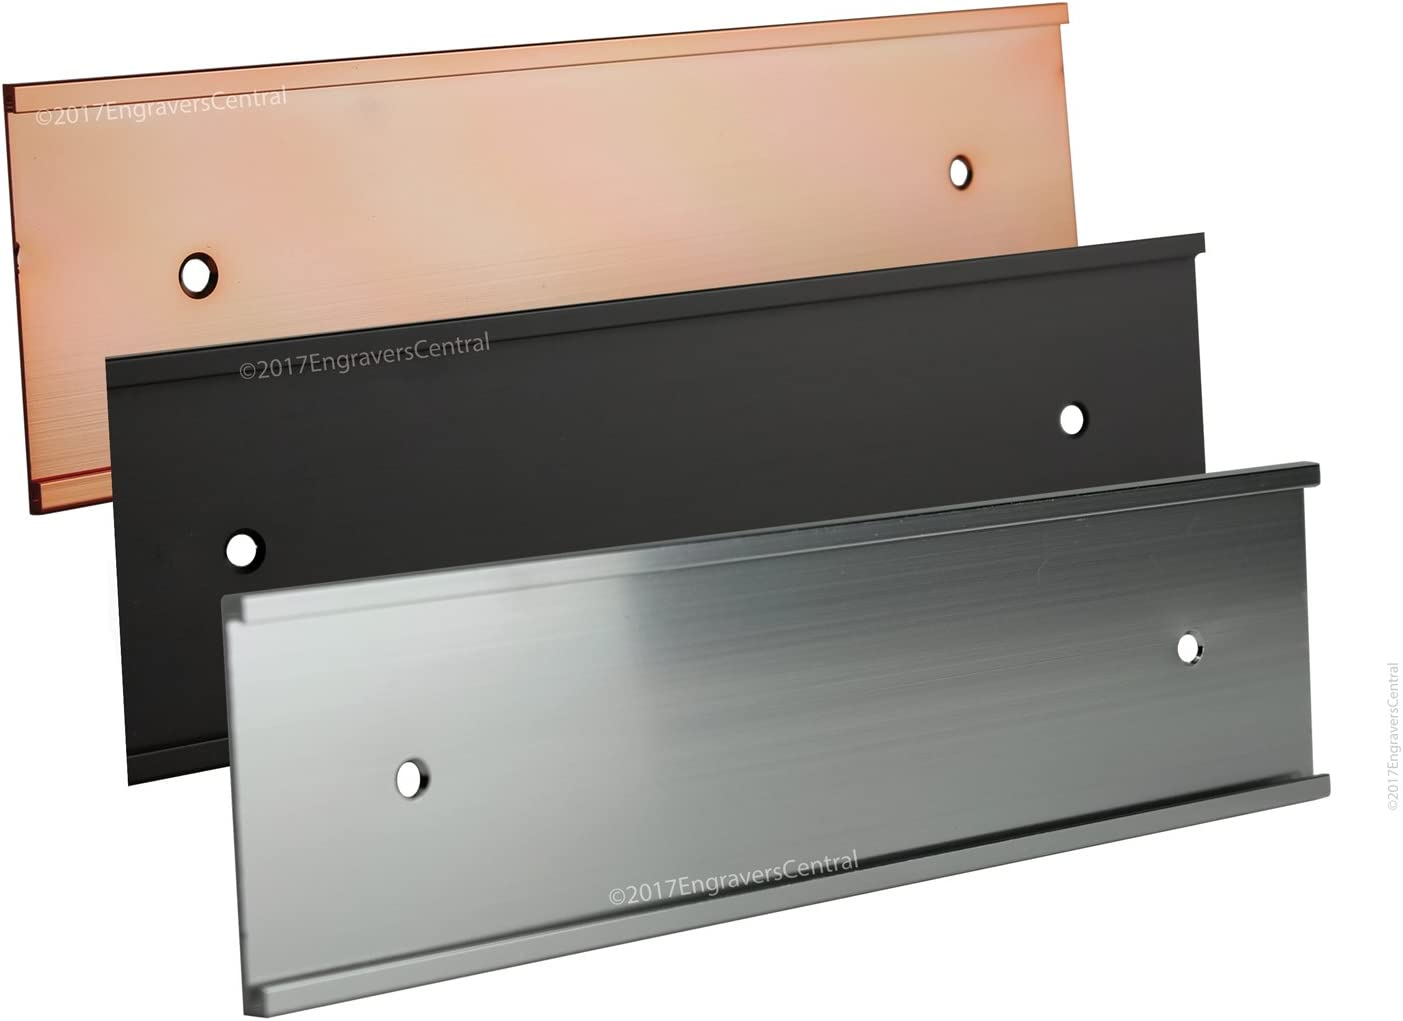 Top Selling 2x12 Office Wall or Door Mount Name Plate Holders - Fits Standard Size 2x12 NamePlates (Not Included), 3 Color Options to Choose from - Gold, Silver or Black.